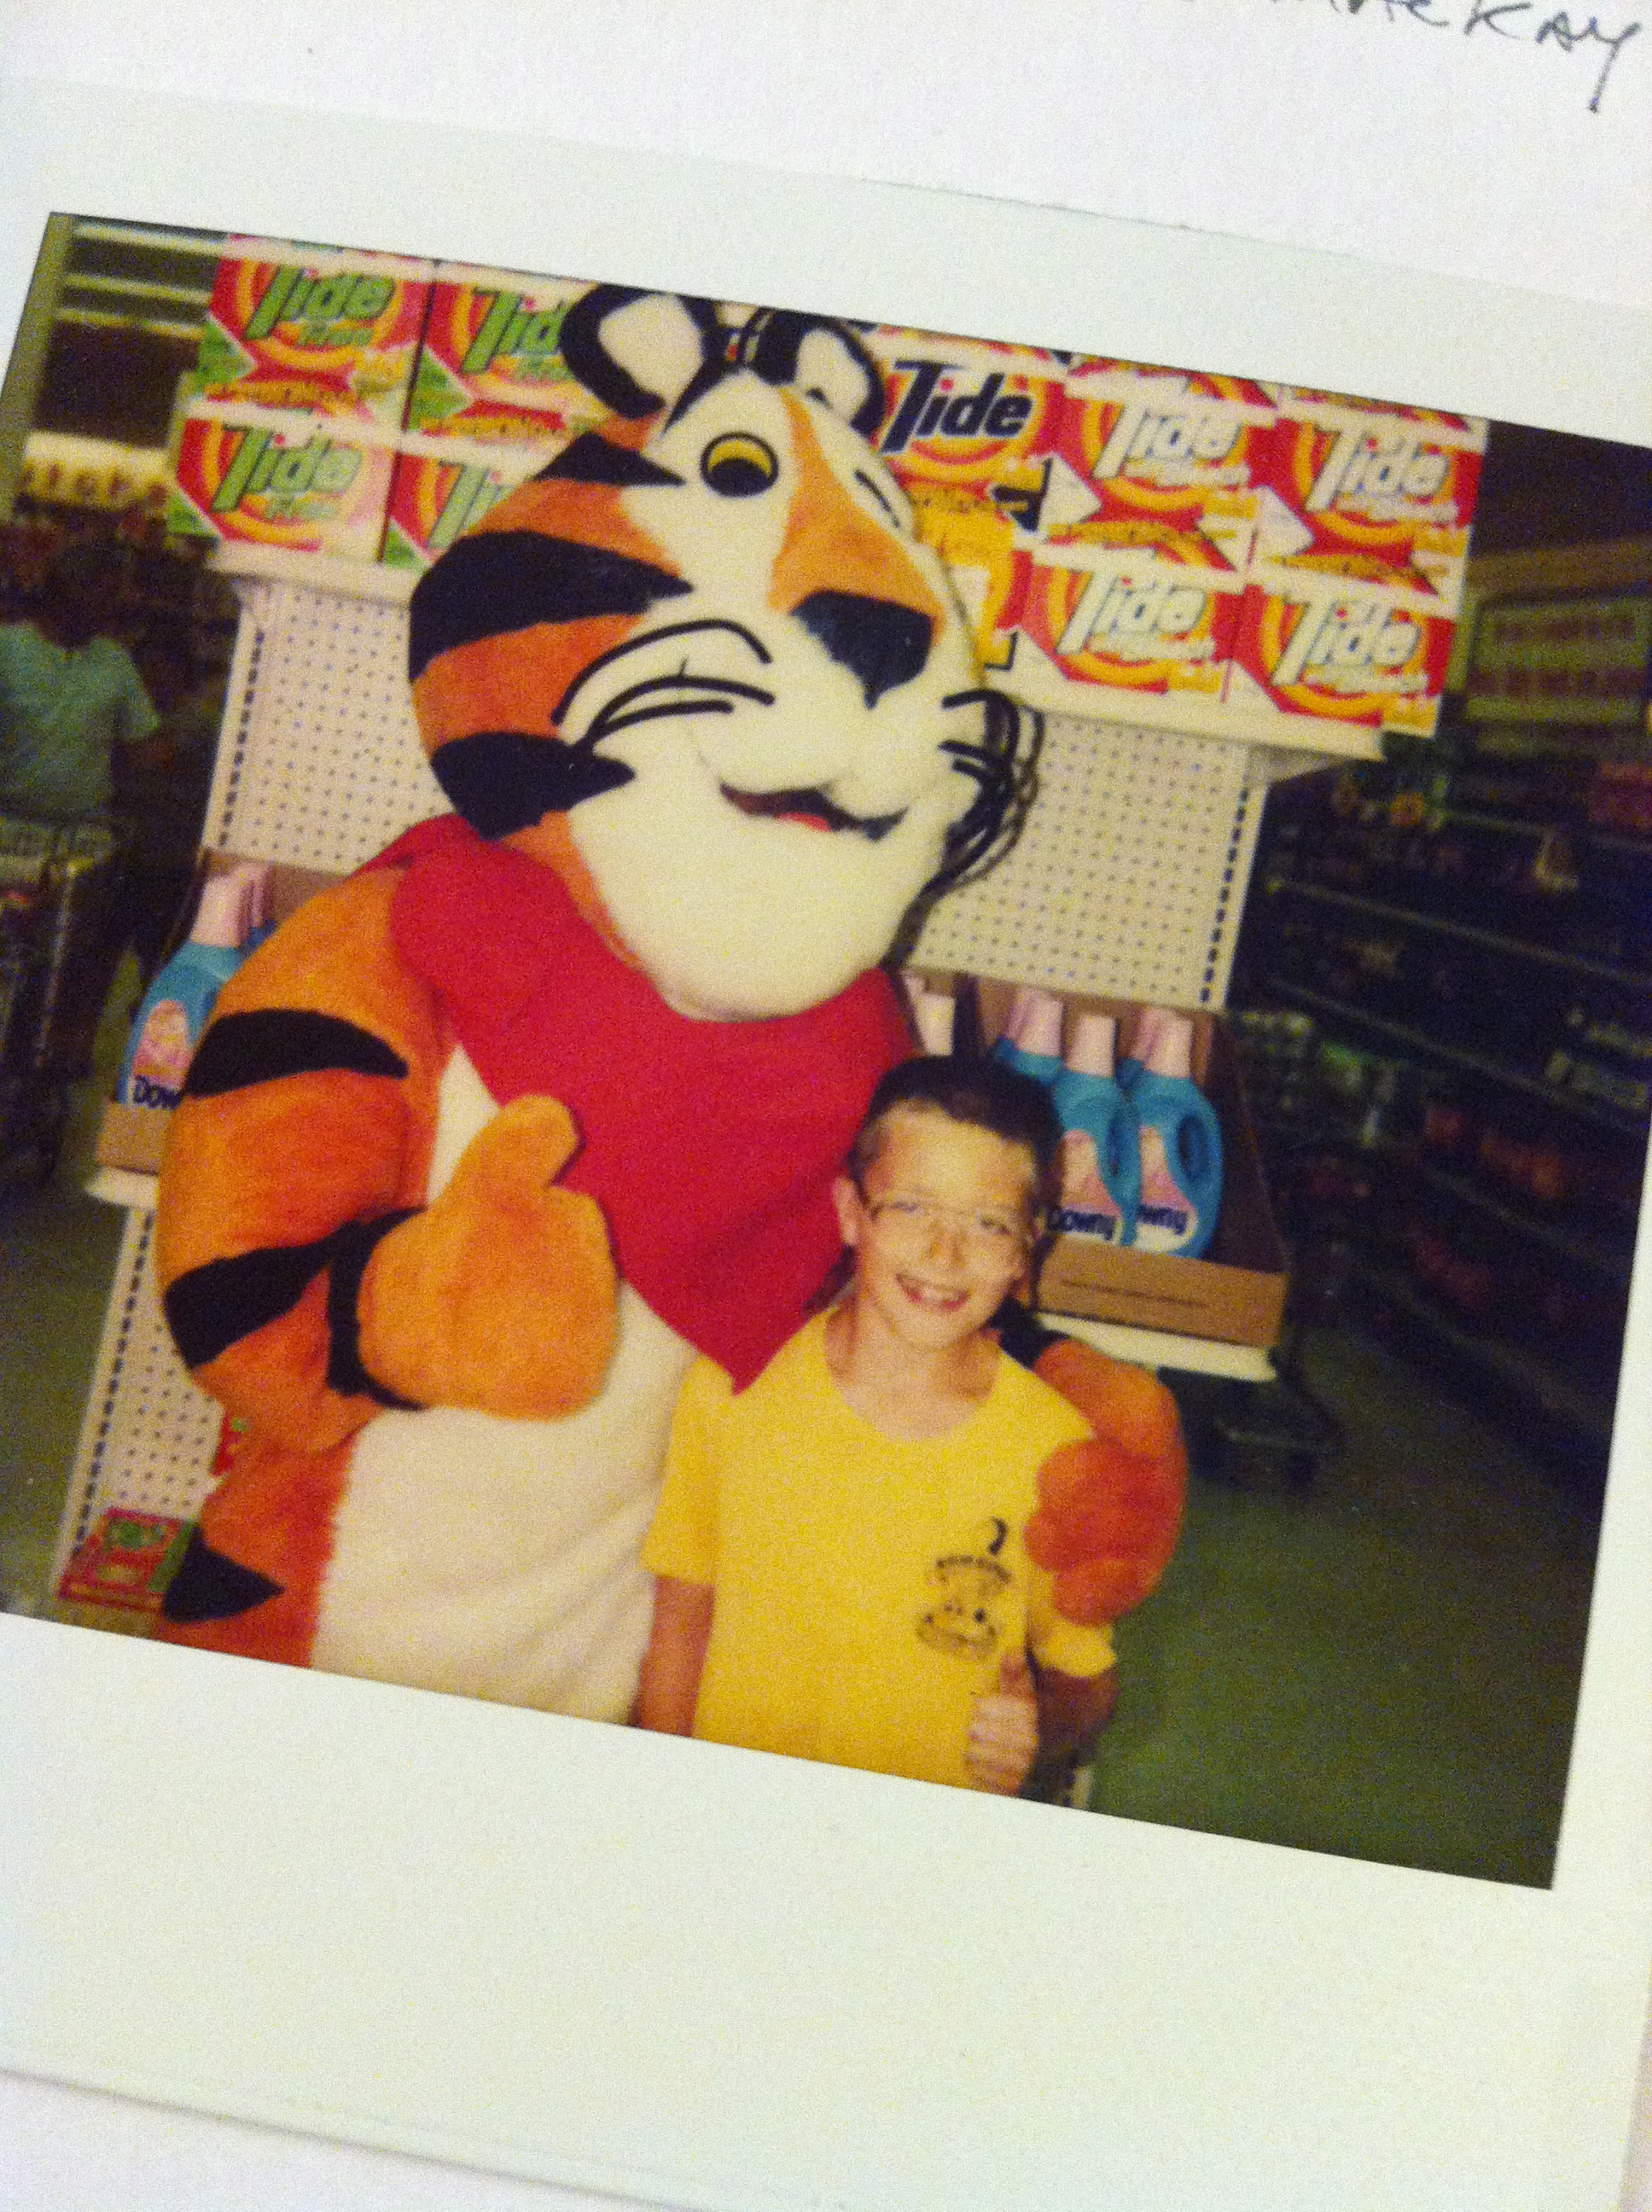 Meeting my hero Tony the Tiger. Later in life I learned he was responsible for giving me diabetes. Still…BEST DAY EVER!